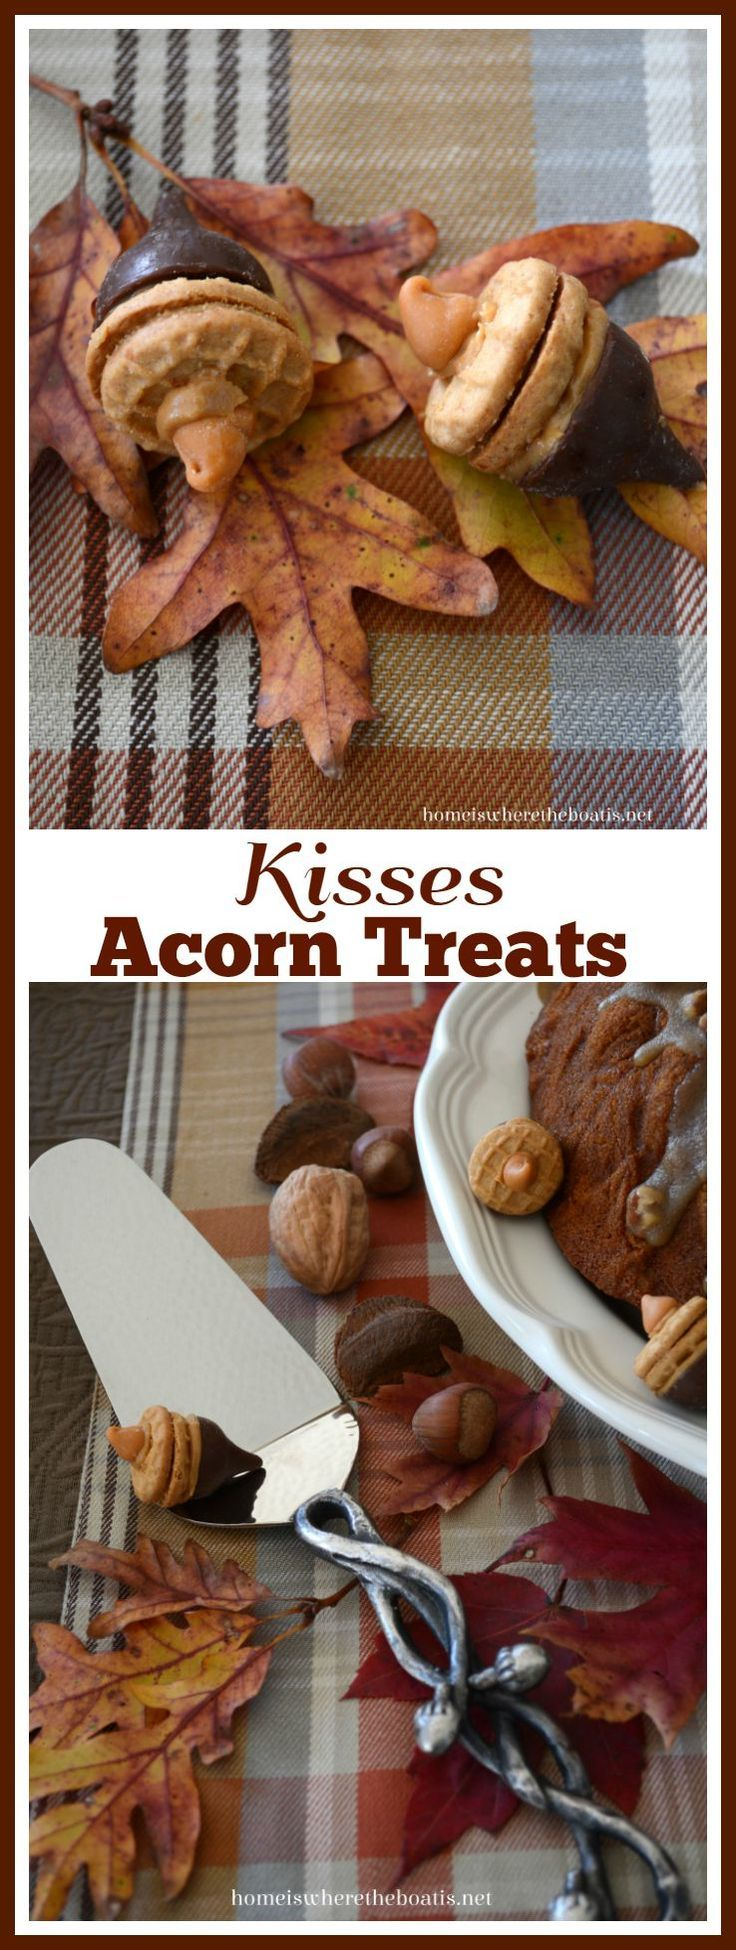 Kisses Acorn Treats!